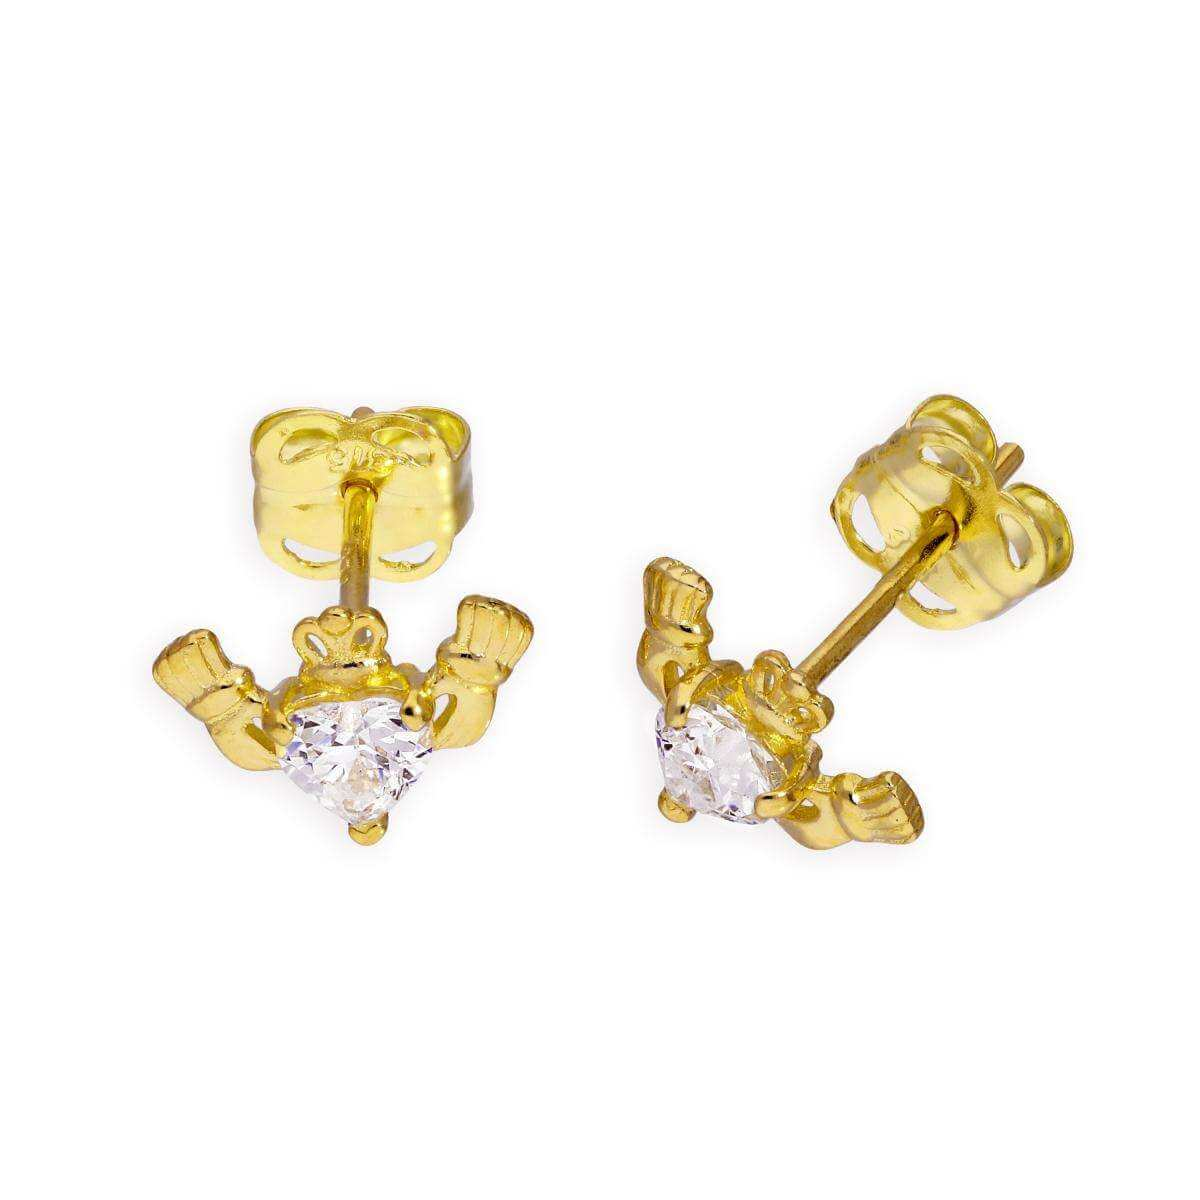 9ct Gold & Clear CZ Crystal Claddagh Stud Earrings